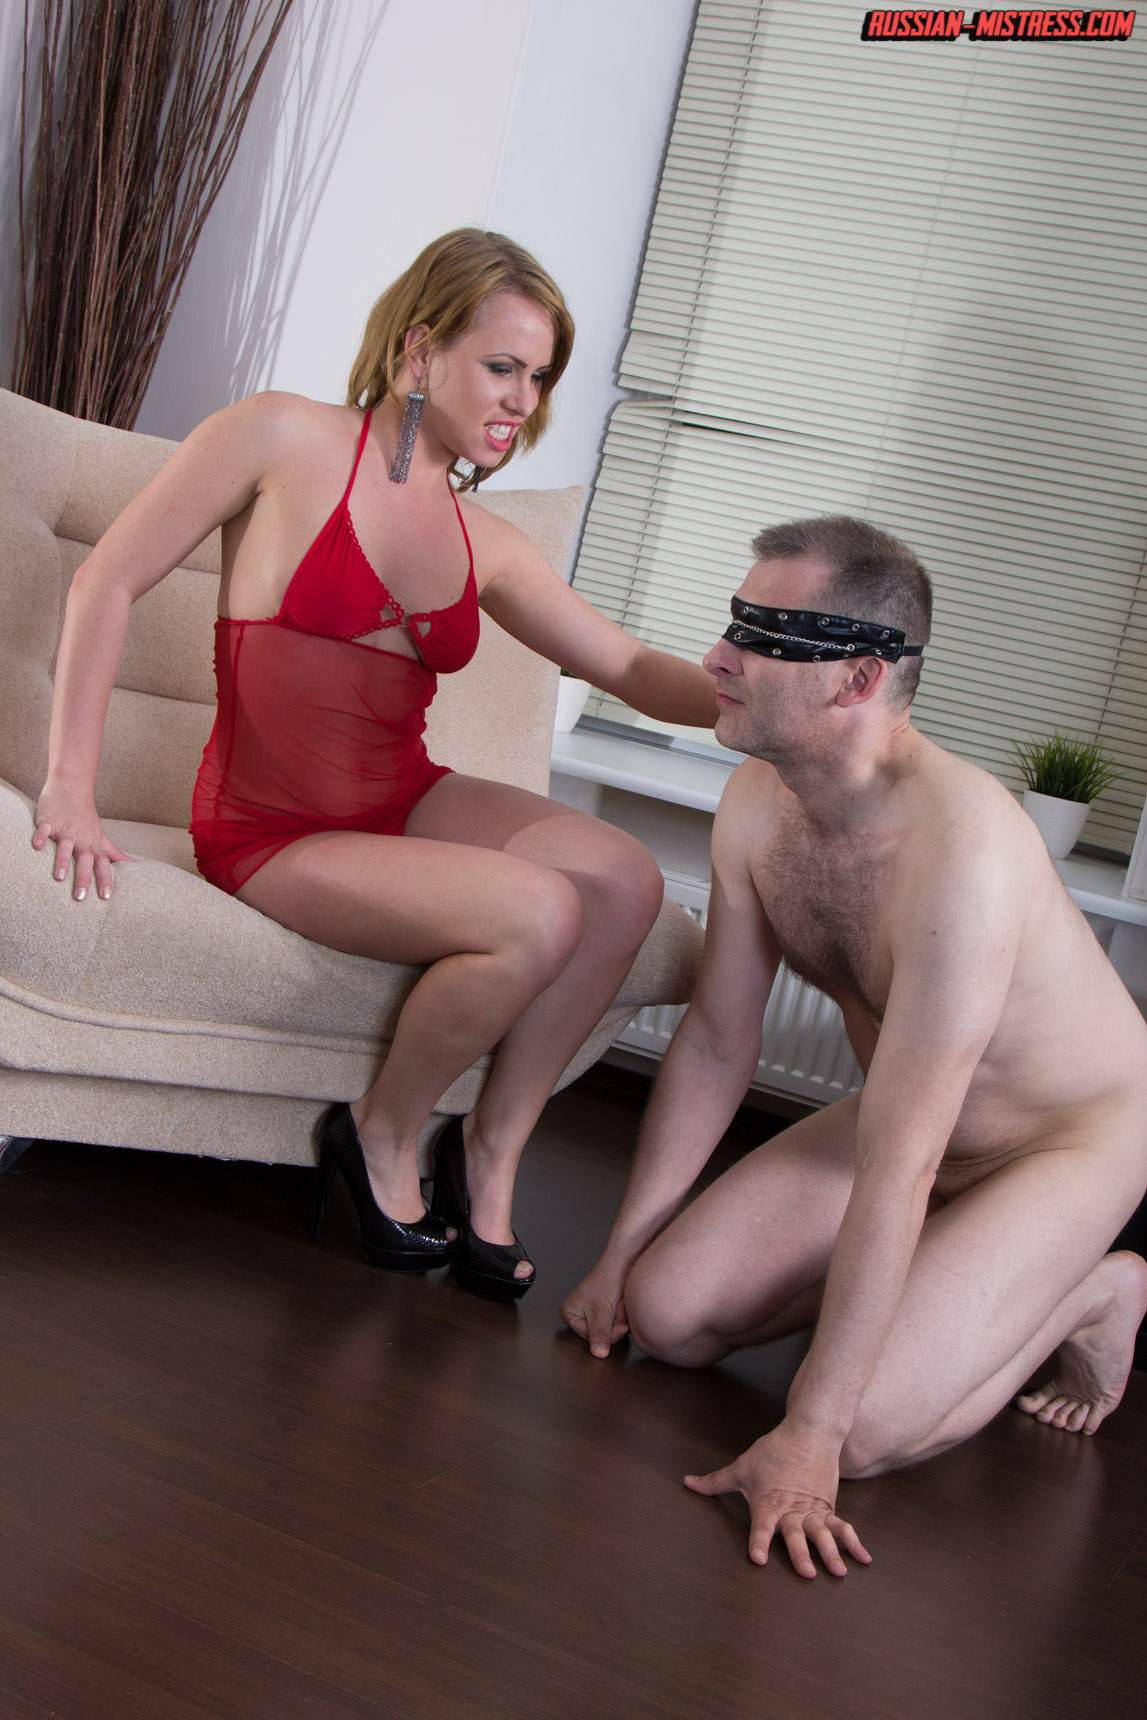 Picture #1 of Cruel bitch is loving wearing red lingerie and heels when pushing slave's face in between her butt cheeks and then peeing then over him